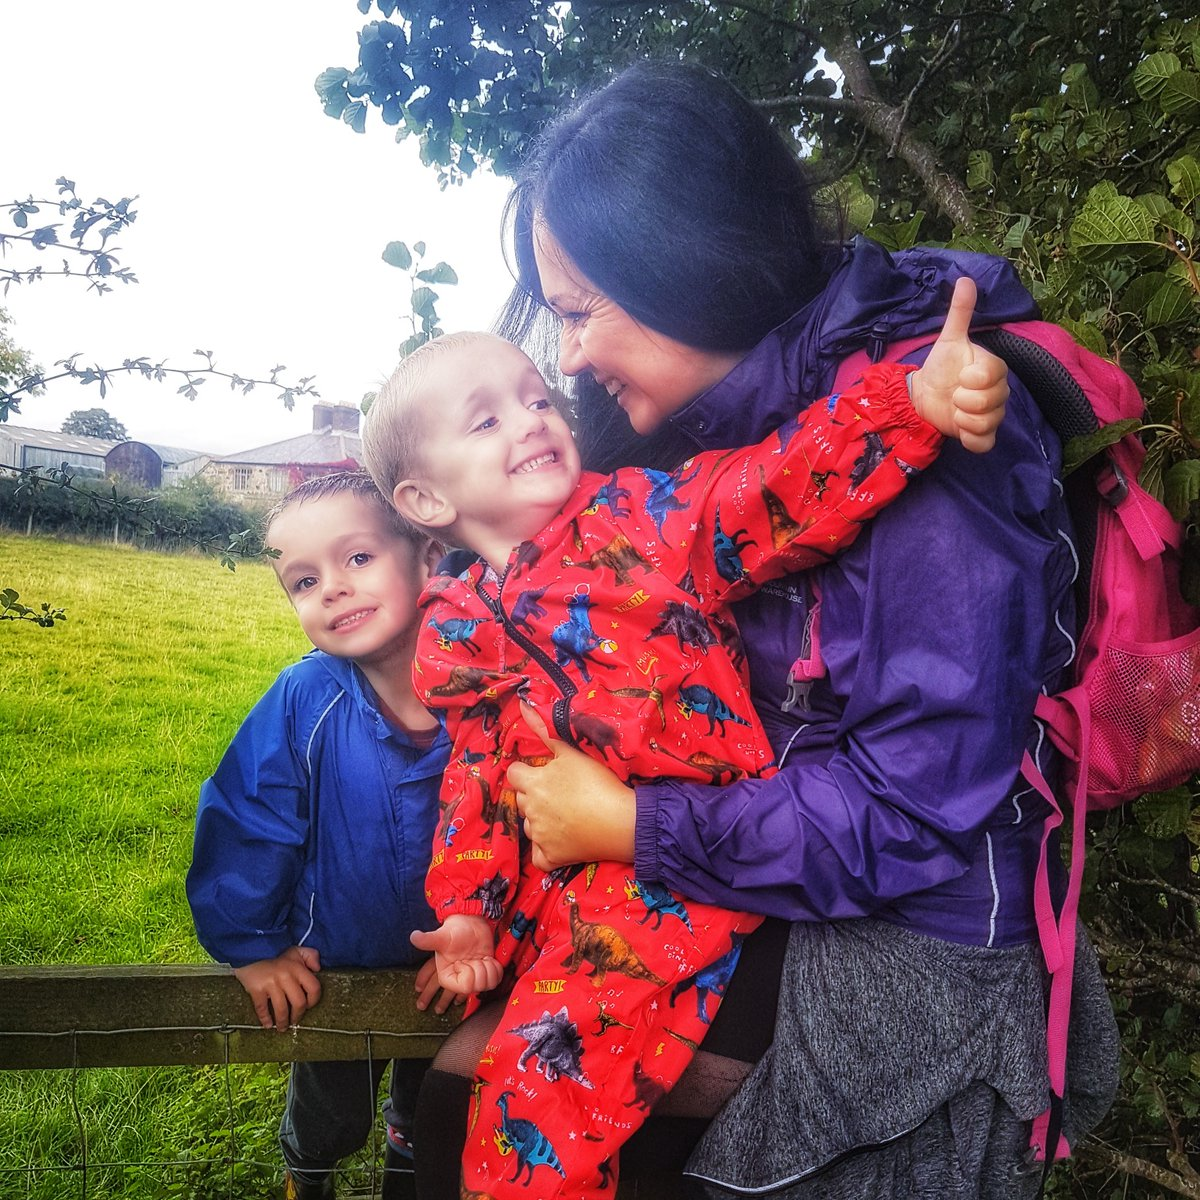 The thoroughly modern mummy: why there is no such thing as work/life balance http://dld.bz/hQ8HM #worklifebalance #worklifeblend #modernmummypic.twitter.com/gM6FlG16SO